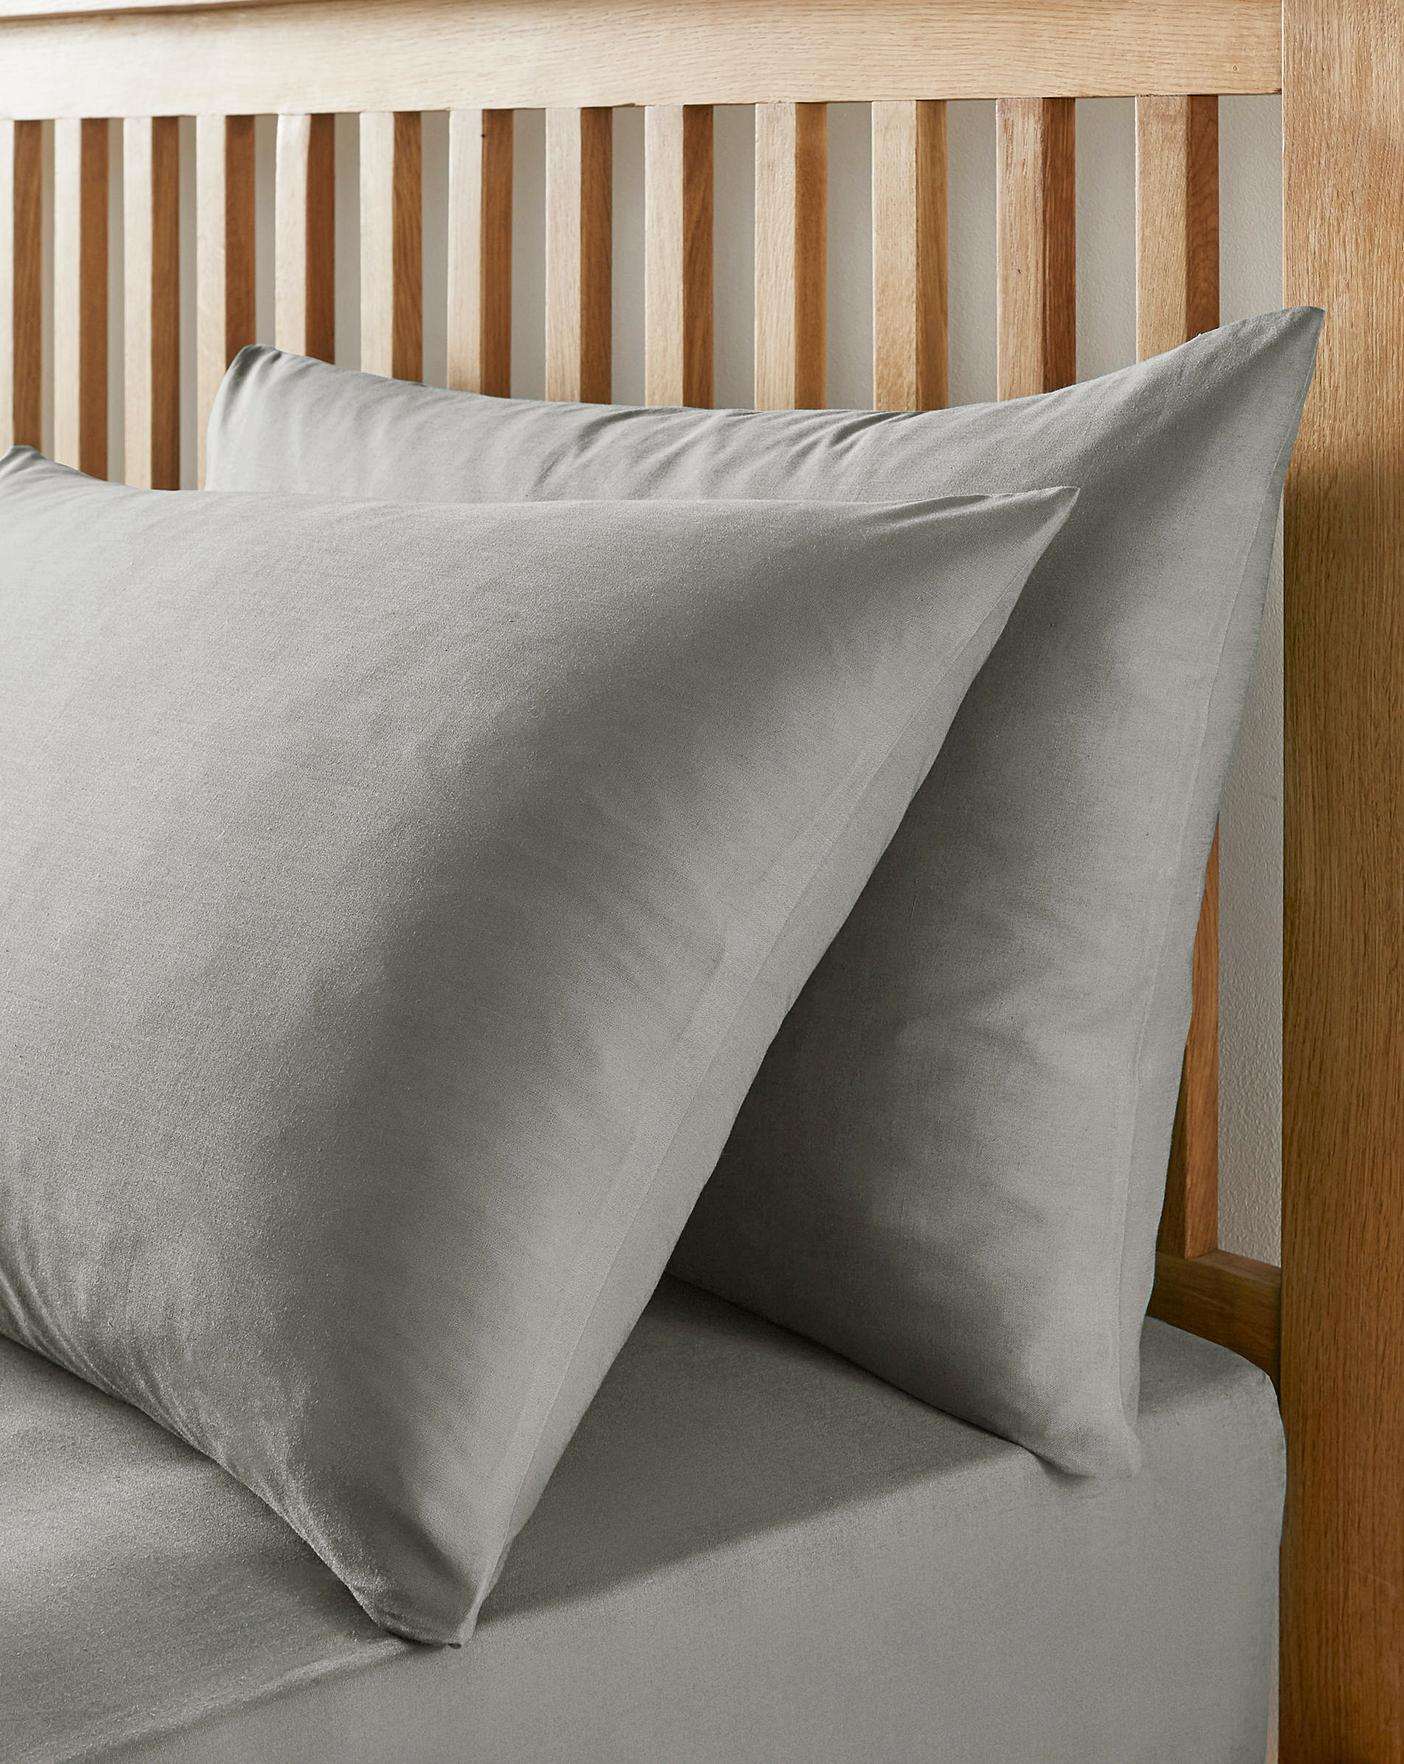 Easy Care BASE VALANCE Polycotton Bed Sheets or 2 Pillow cases